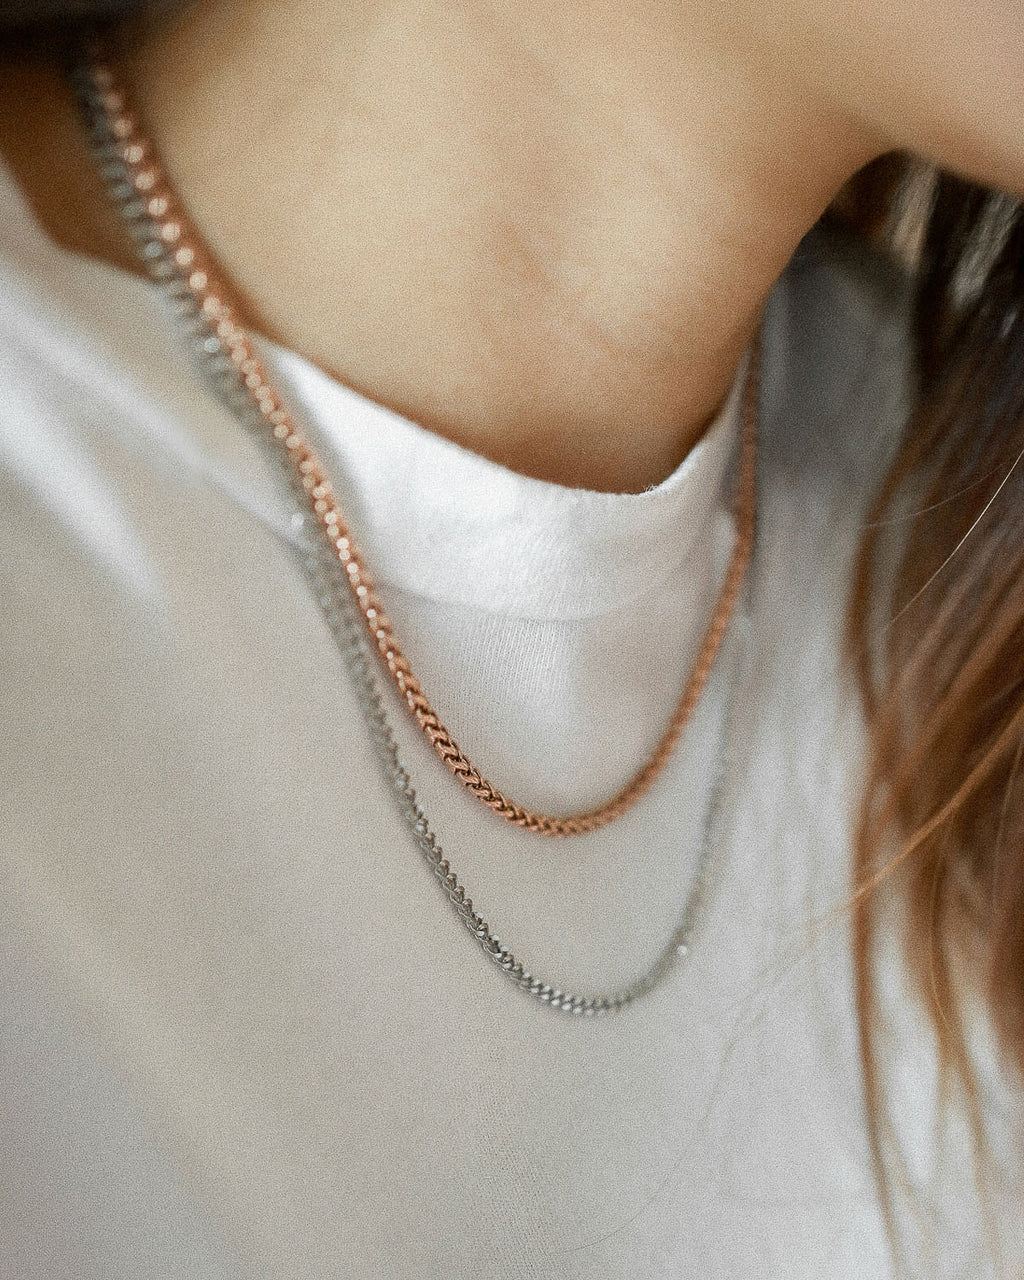 Rose gold and silver chain necklace stack - The Hexad Jewelry